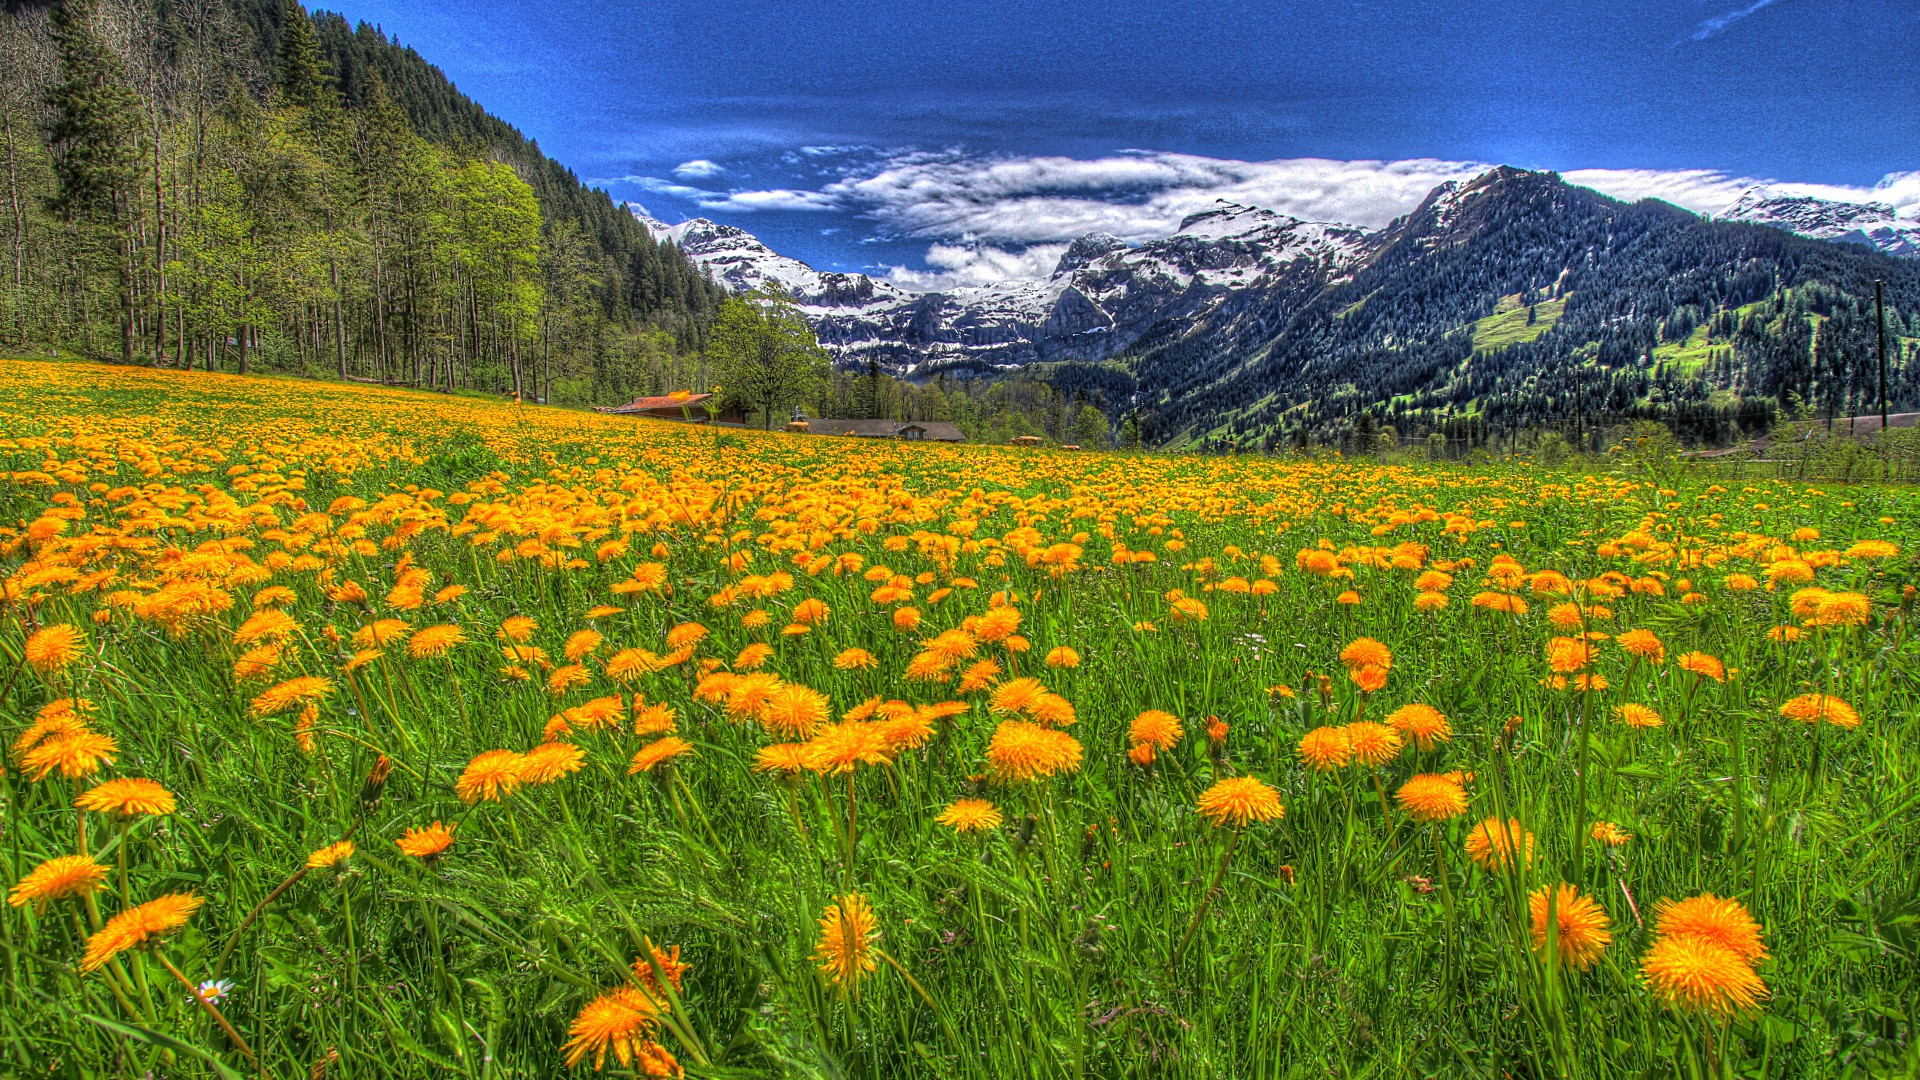 Mountains and Field of Yellow Dandelions – Photography Wallpapers